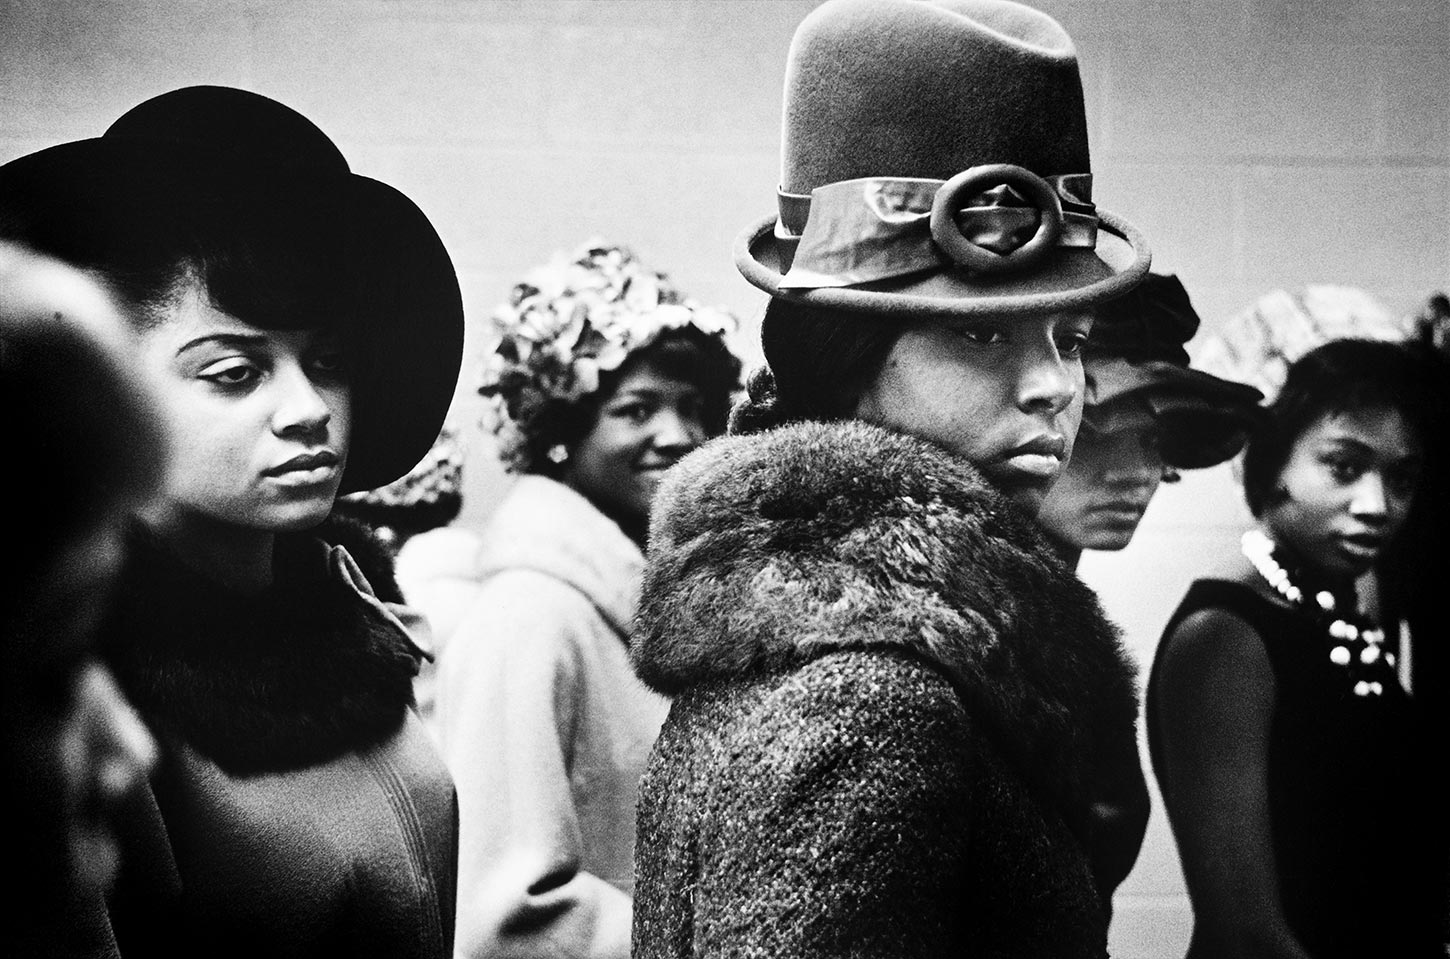 Harlem Fashion Show. Harlem, New York. 1963.